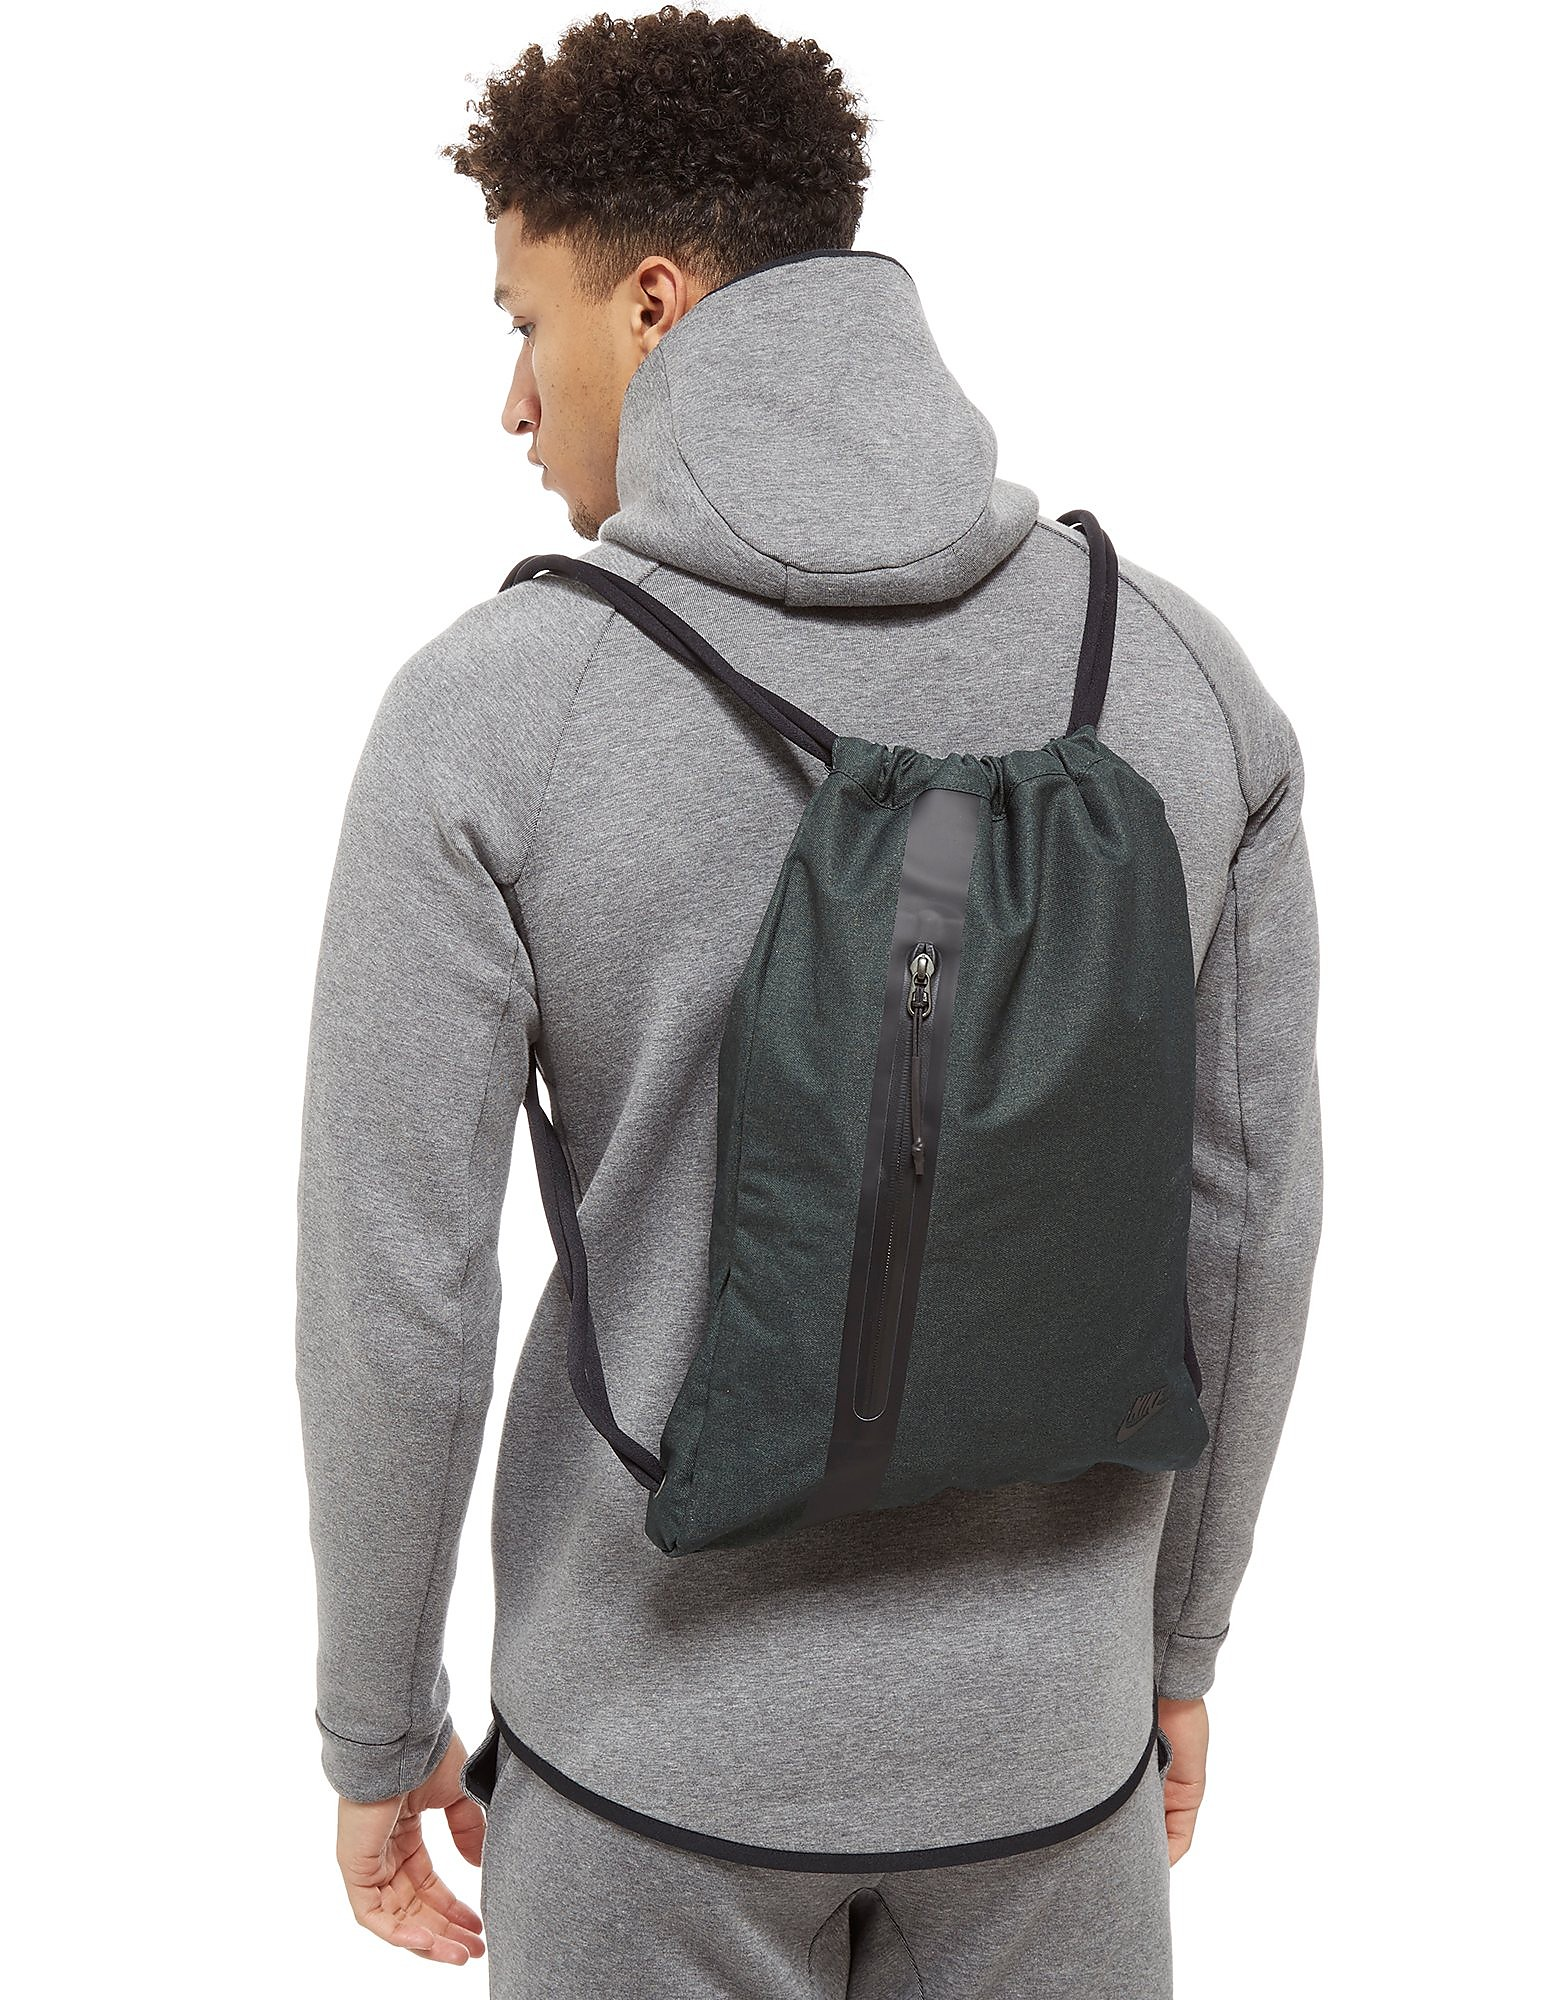 Nike Tech Gym Sack